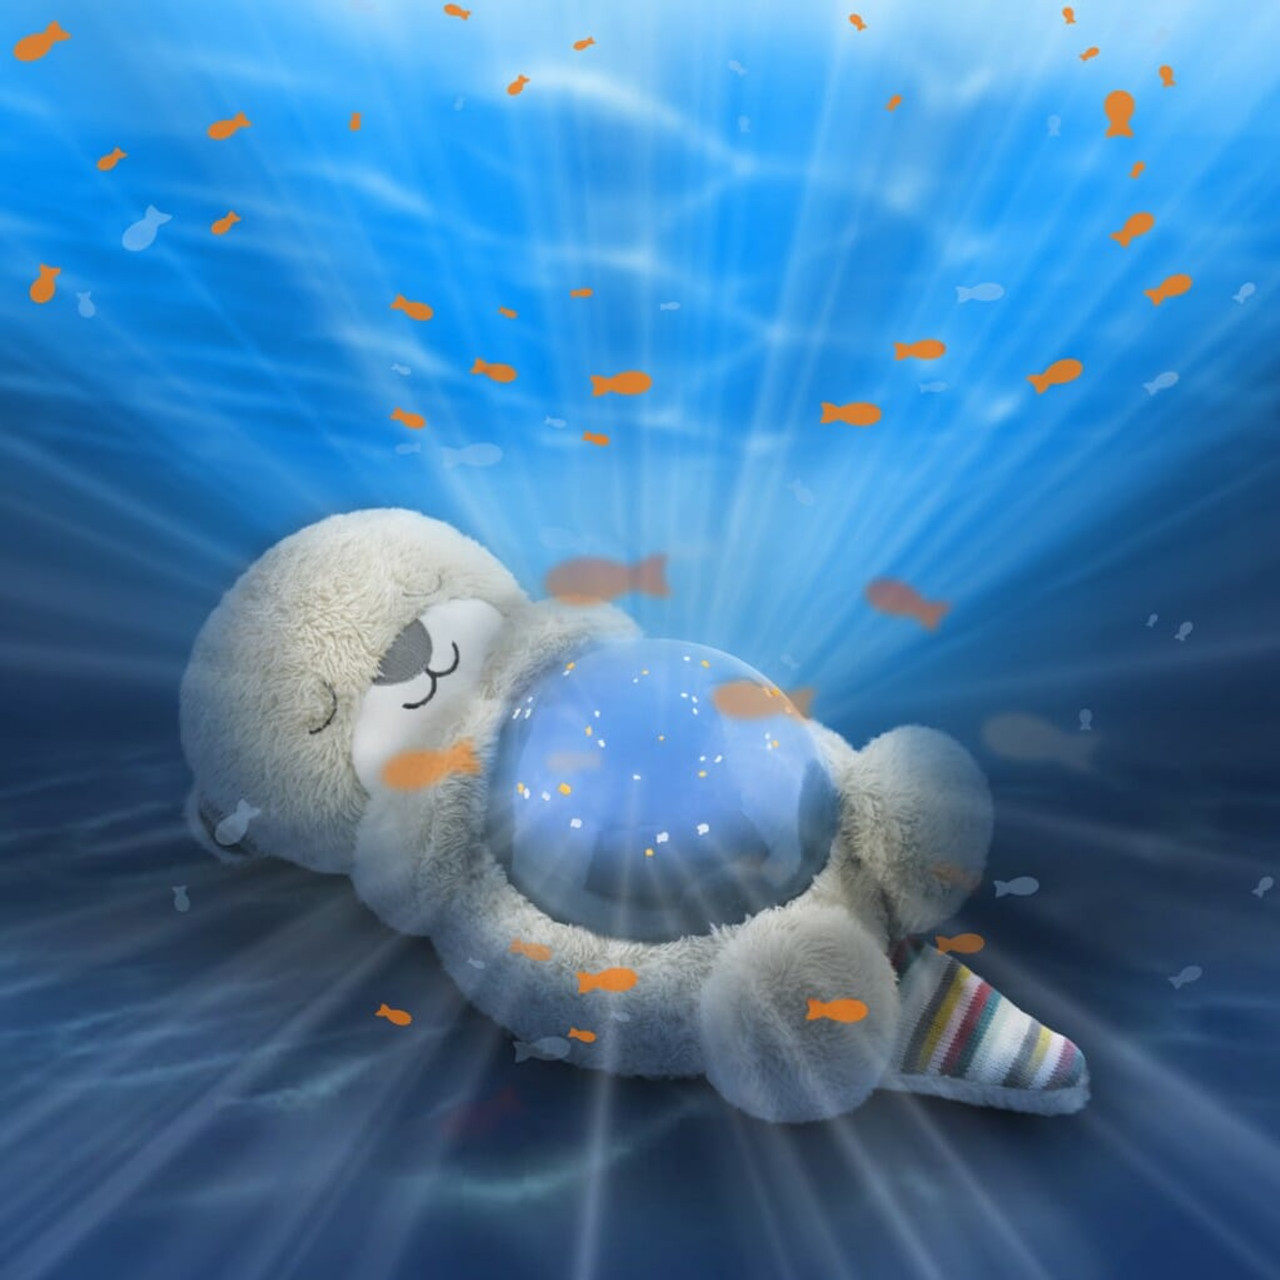 Zazu Ocean Projector CODY at Baby Barn Discounts Turn your little one's room into a magical underwater world, with moving waves and fish swimming around the room, while listening to relaxing ocean sounds.